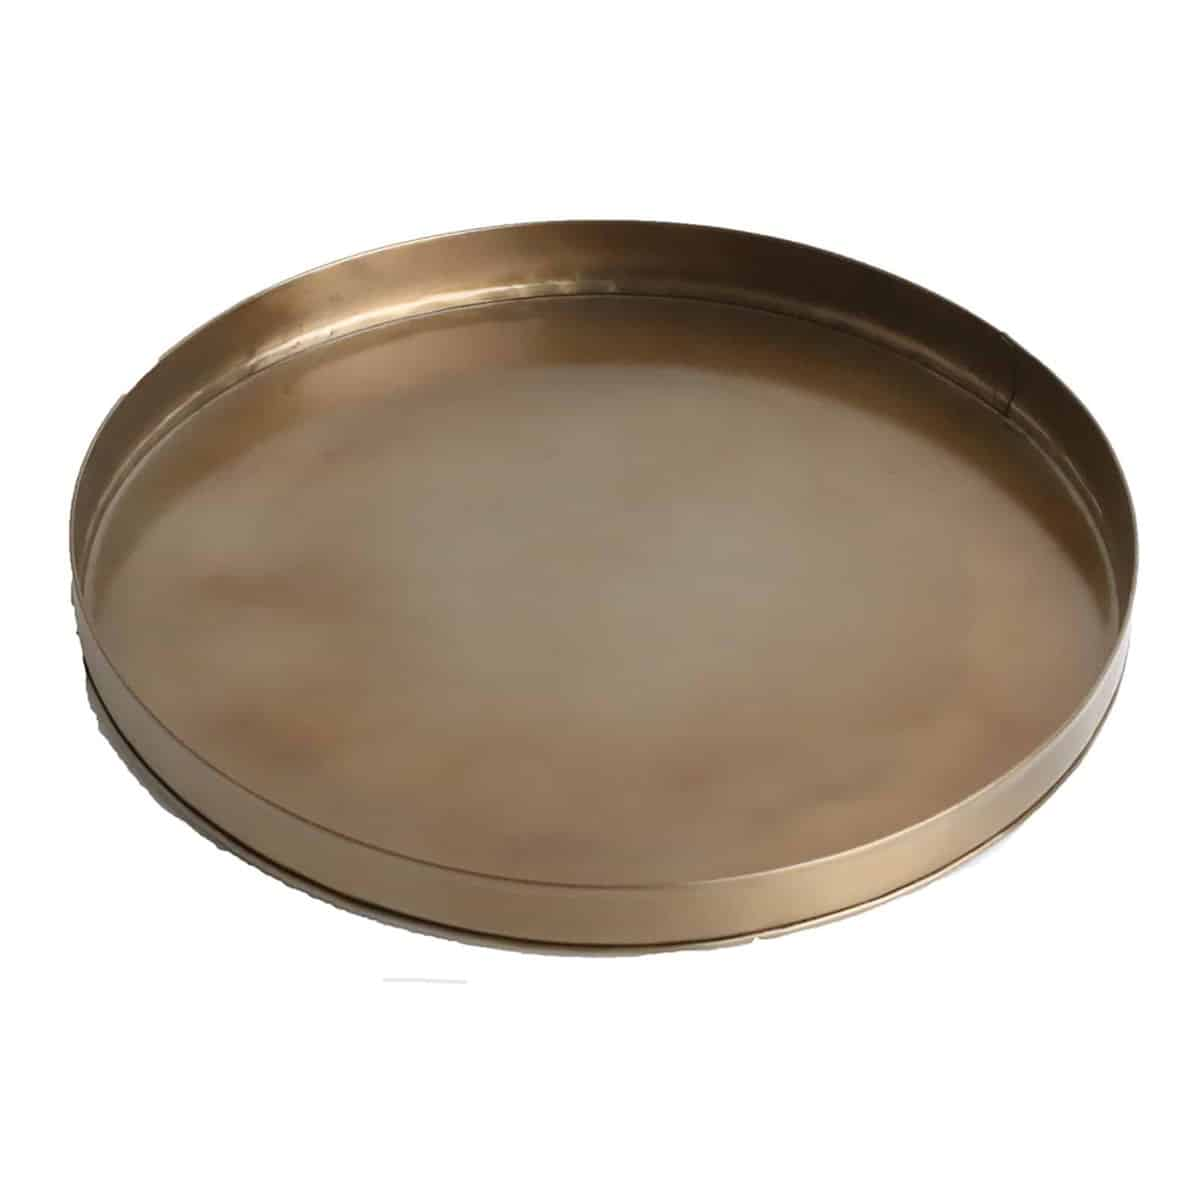 top of brass round tray